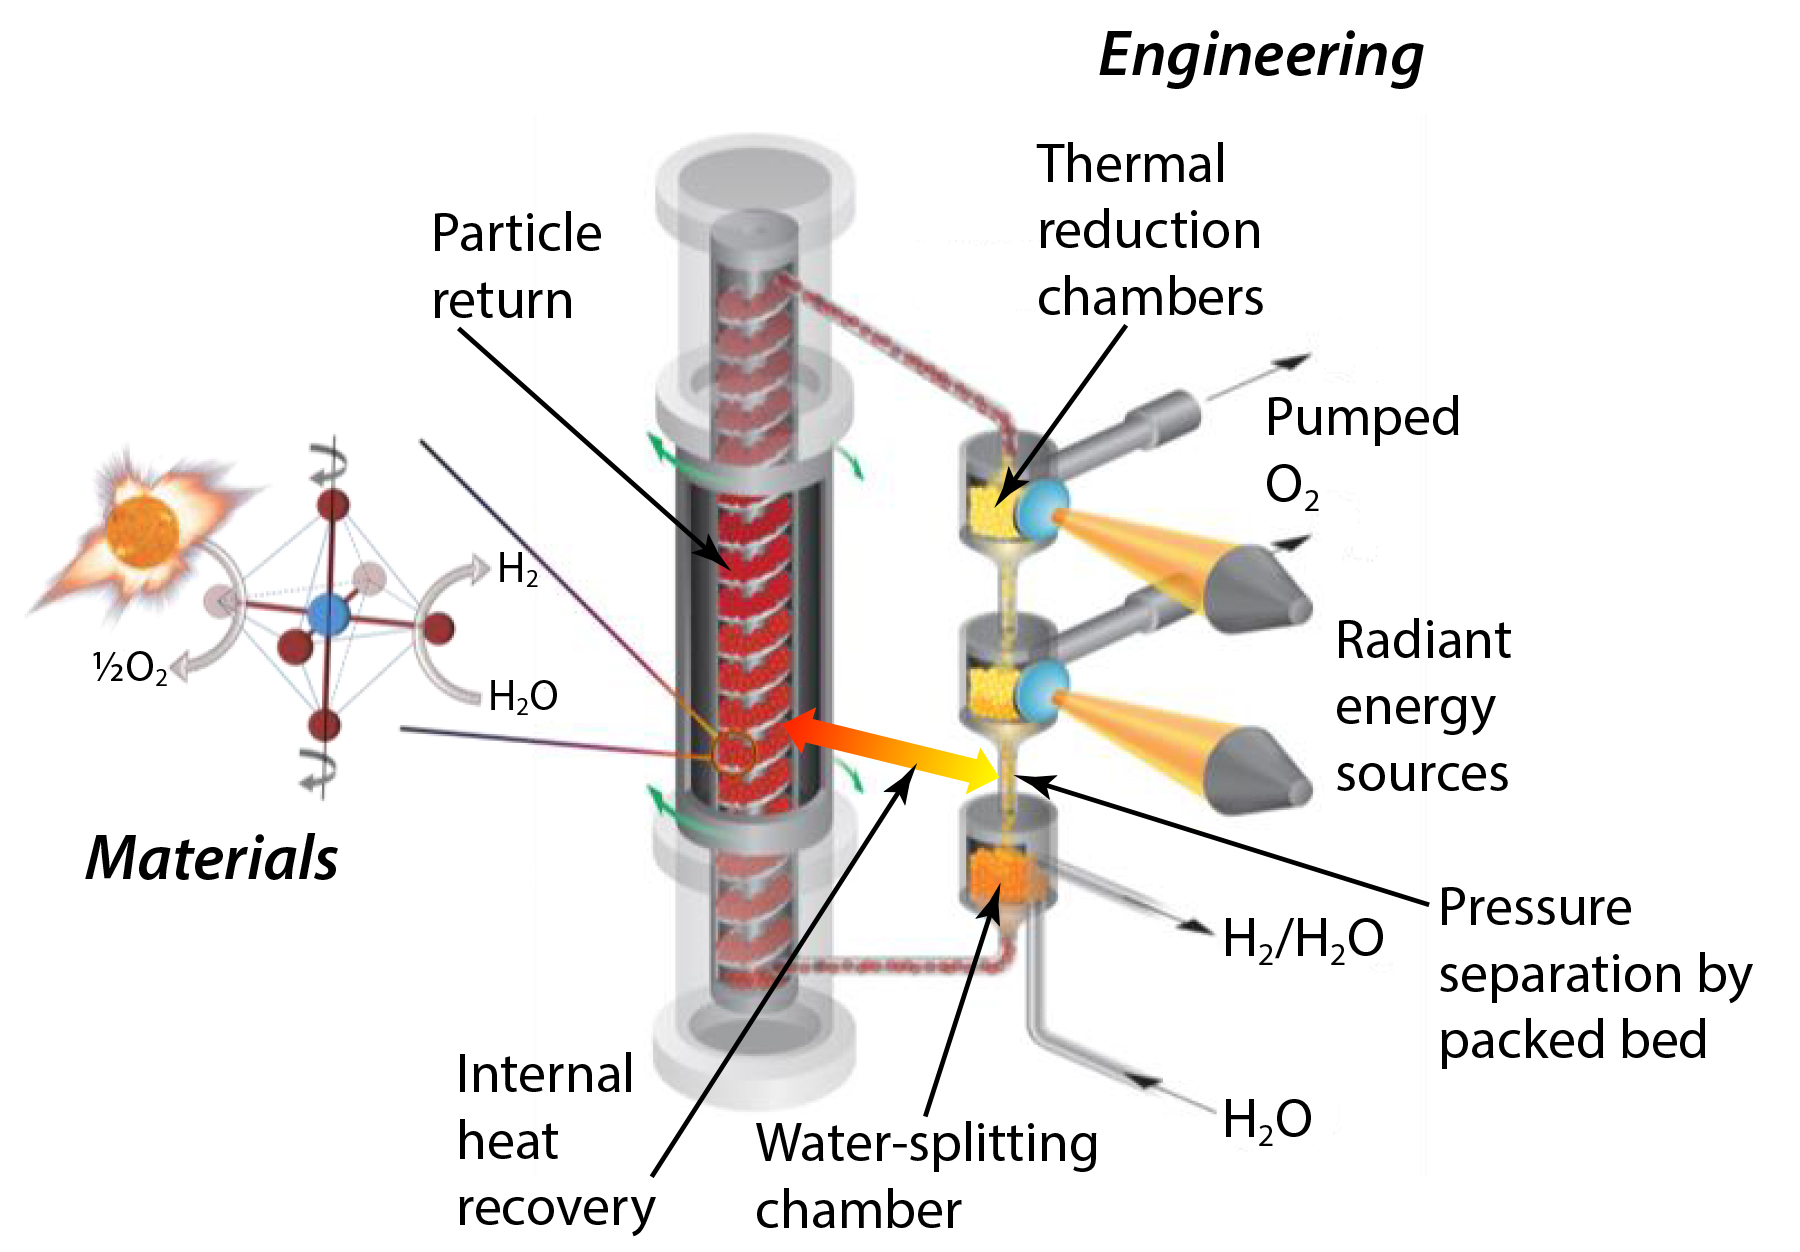 The CPR2 technology improves Sandia's patented reactor design by significantly lowering the thermal reduction step's pressure, which is key to achieving high extents of oxide reduction and solar-to-hydrogen efficiency. The downward-moving packed bed of particles provides the necessary pressure separation (i.e., gas seal) between thermal reduction chambers. Pressure separation also allows for the vacuum pumping of oxygen from each thermal reduction chamber, thus avoiding the energy-intensive use of sweep gas.